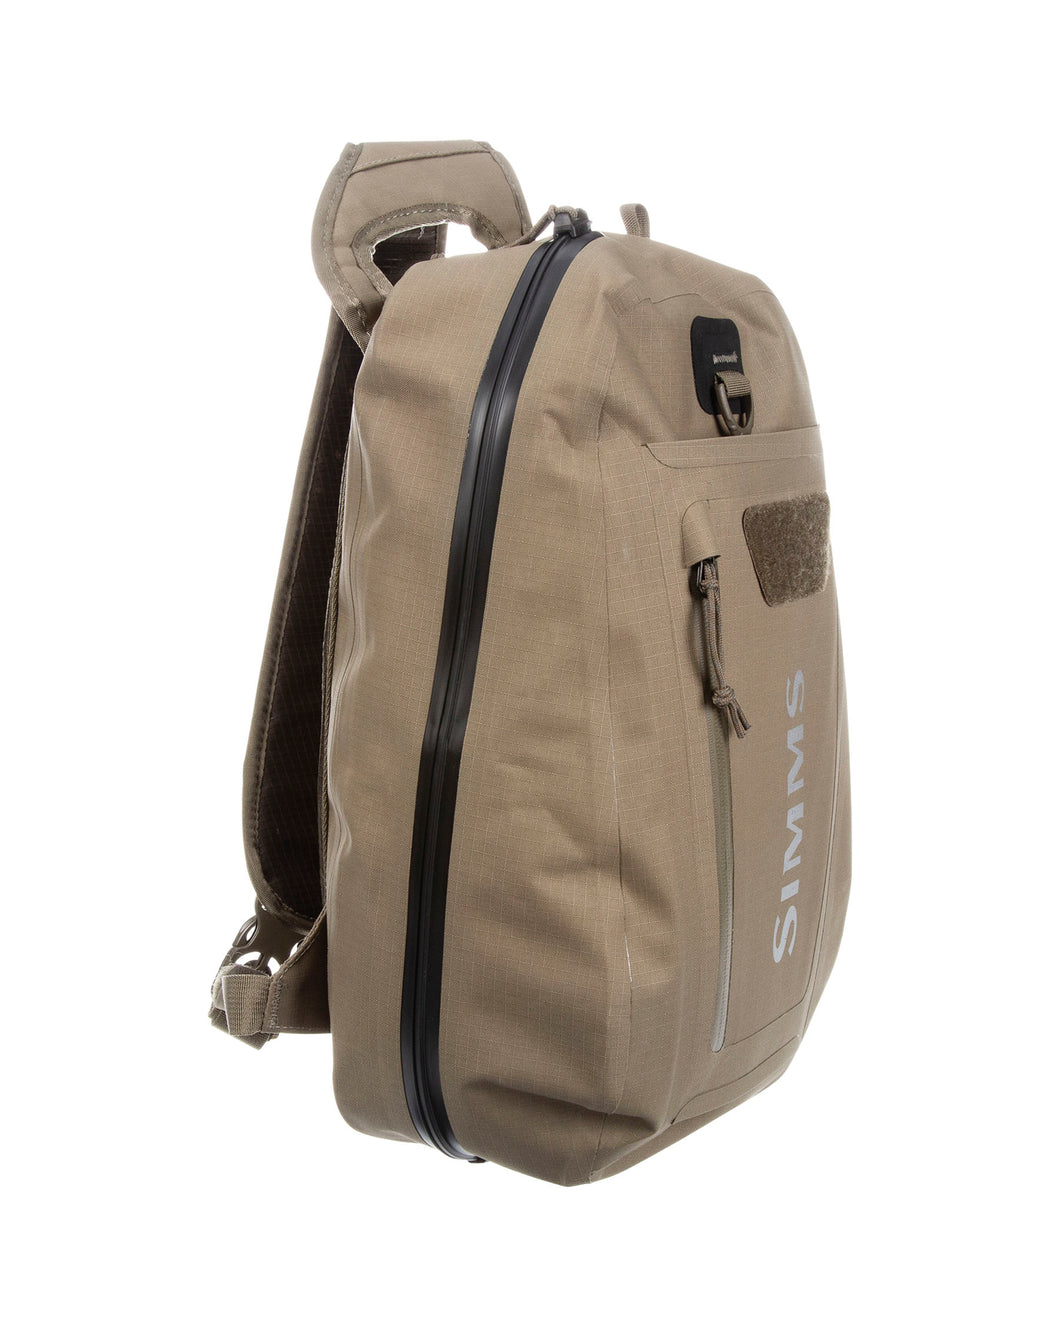 Simms Dry Creek Z Sling Pack - 15L - Conejos River Anglers